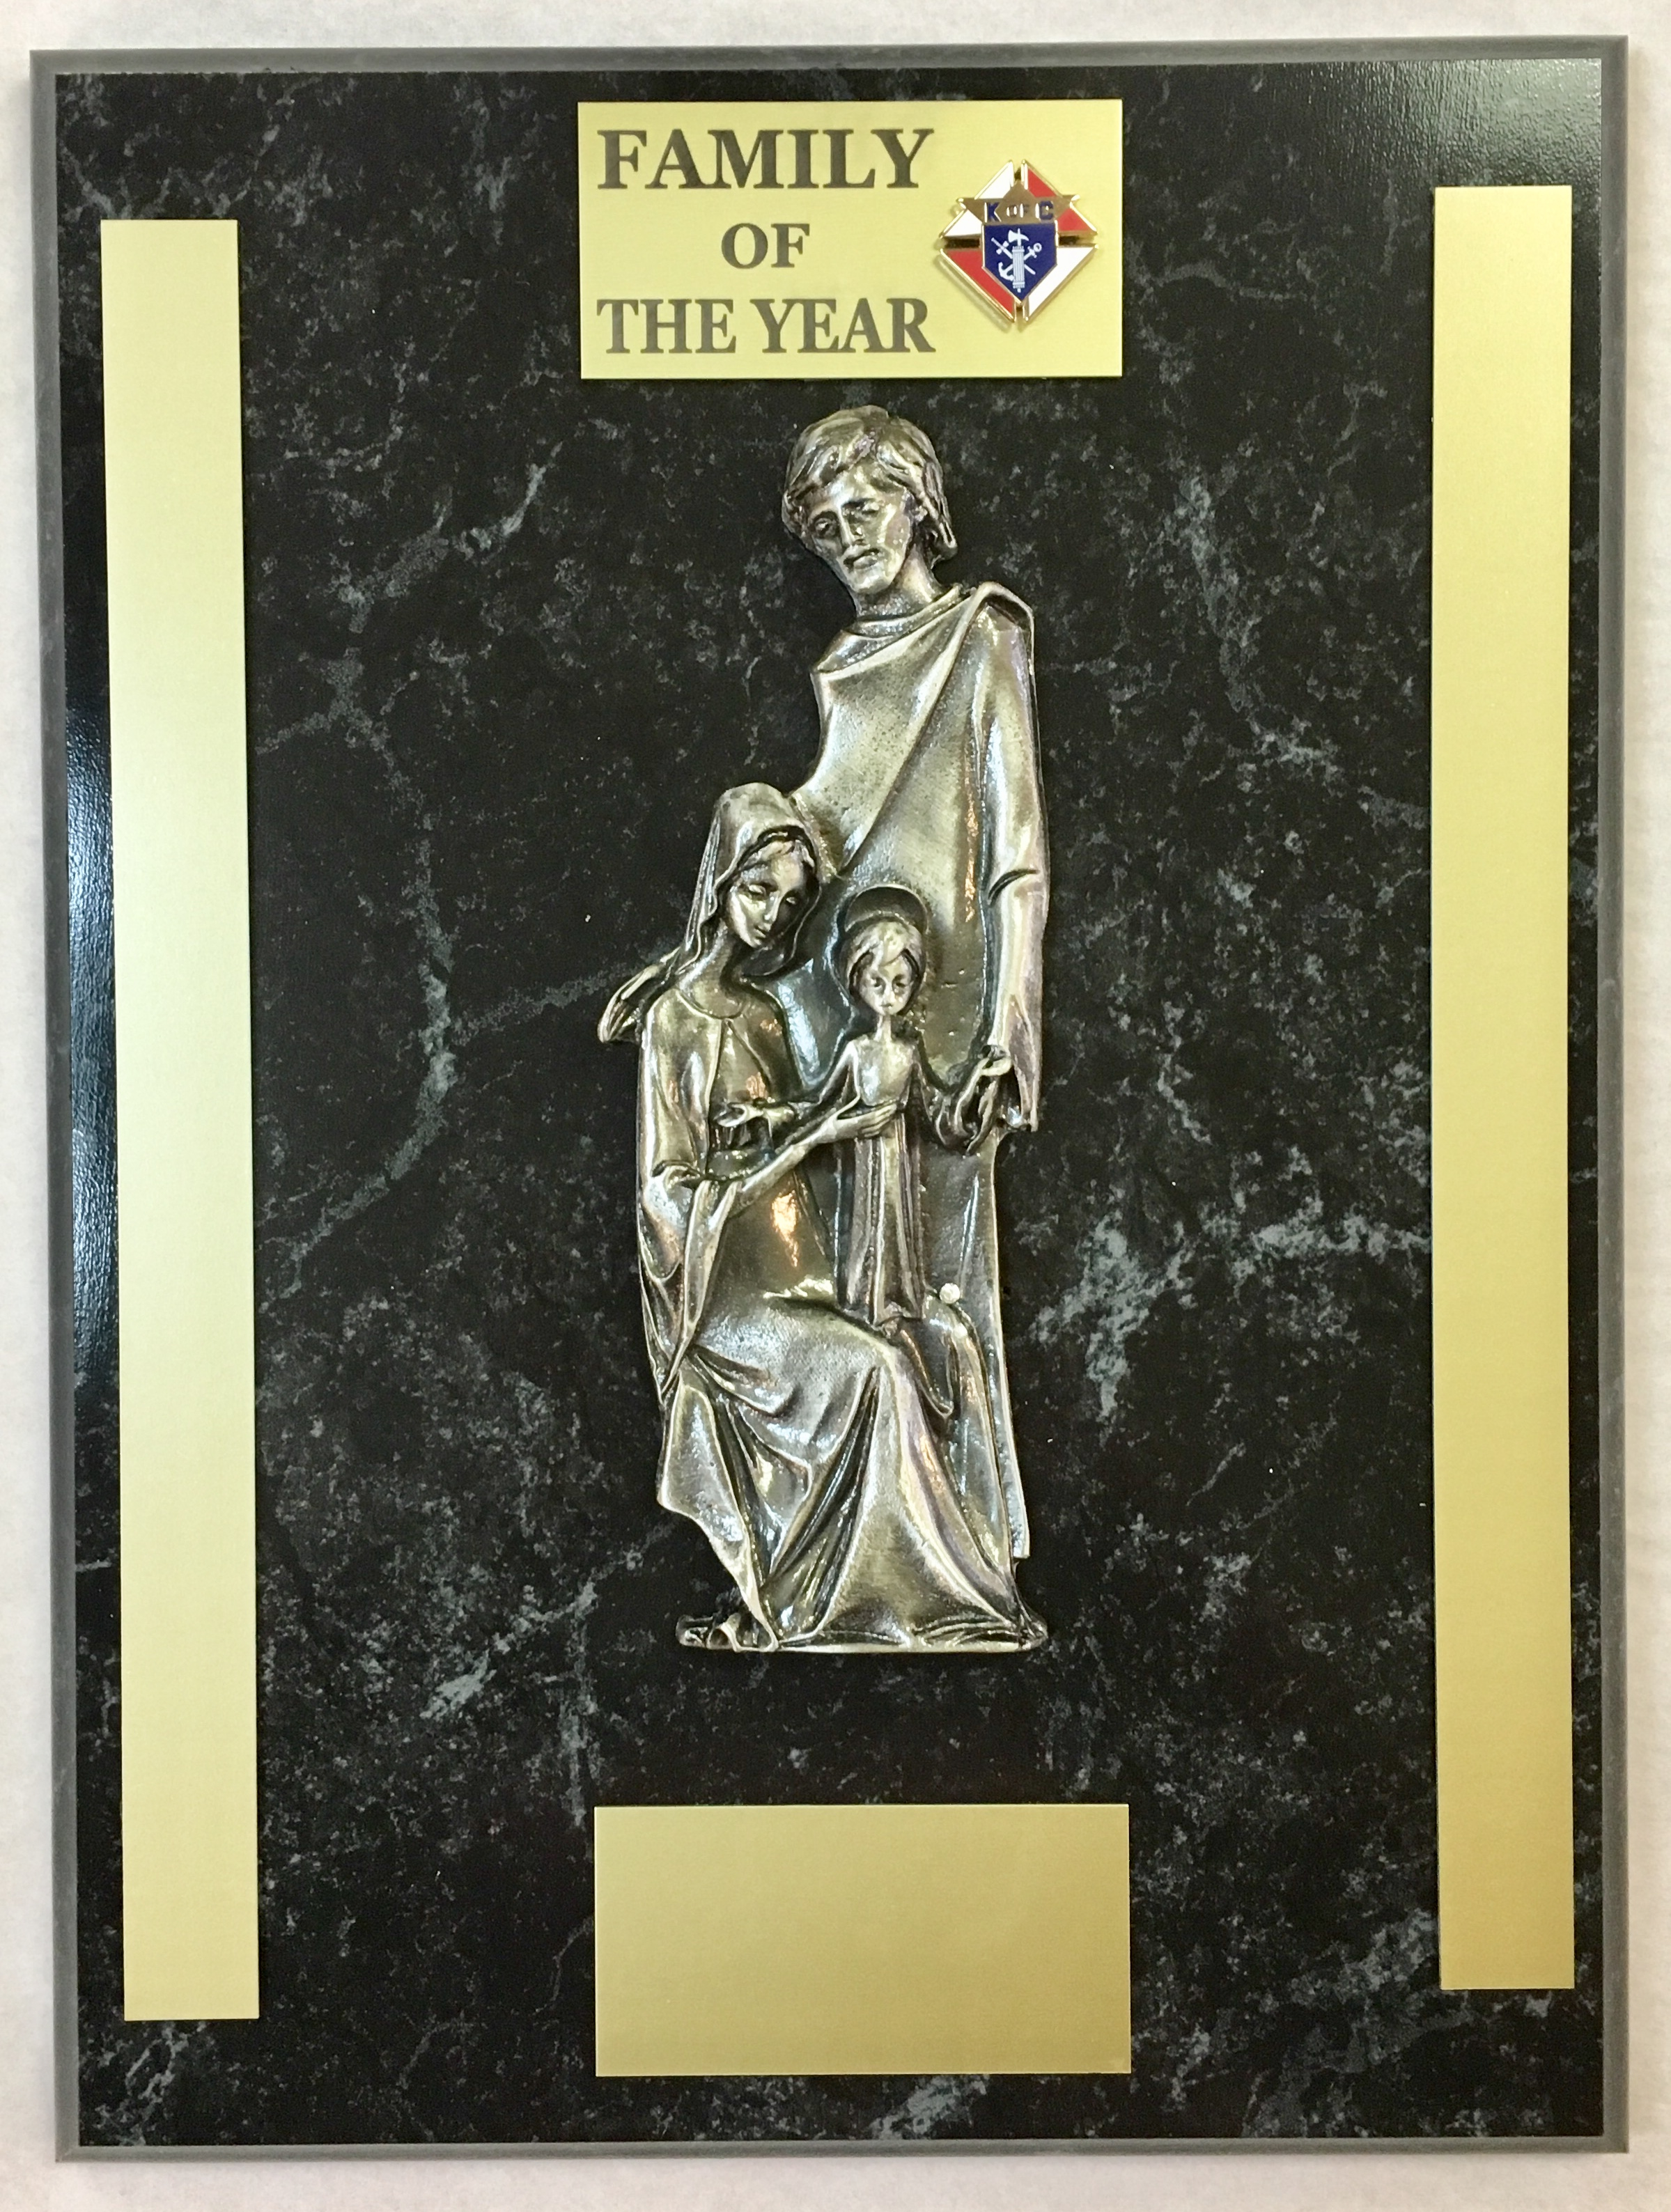 JC-1329 - Family Of the Year Plaque